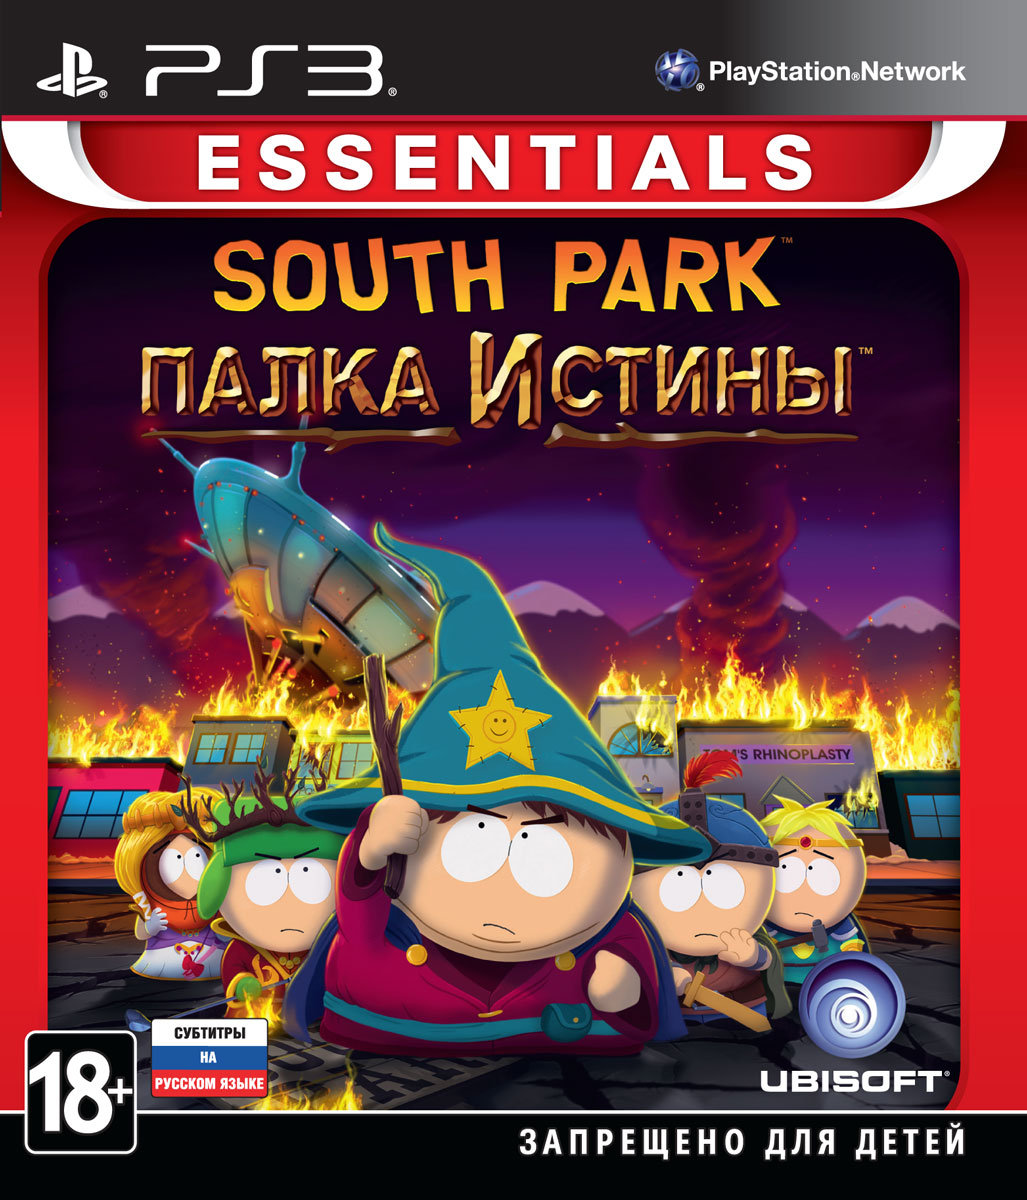 South Park: Палка Истины. Essentials (PS3), Obsidian Entertainment